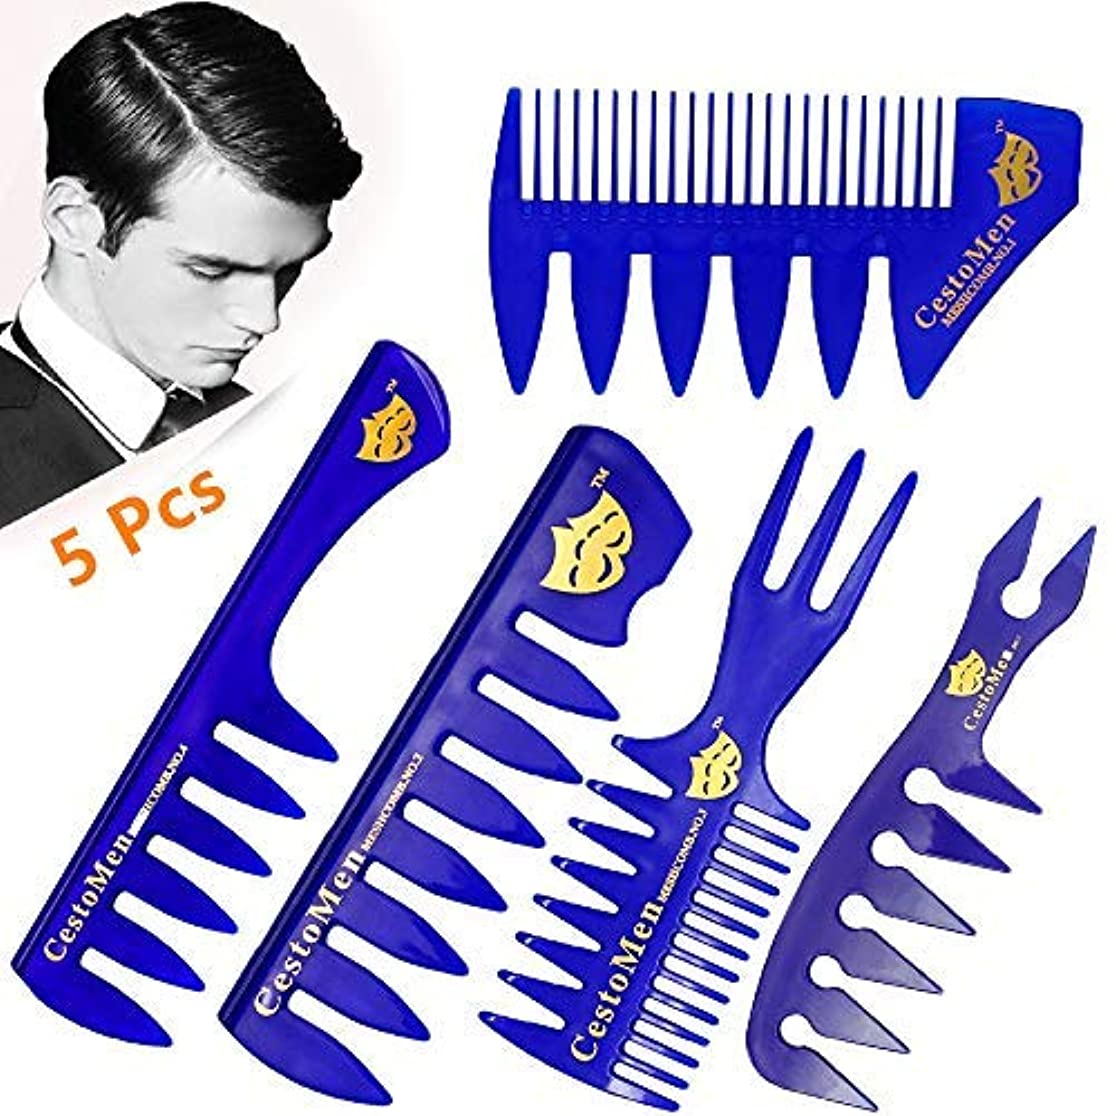 独立効率的に規定5 Pack Hair Professional Teasing Combs - for Hairdressing, Barber, Hairstylist, Premium Quality Anti Static Hair...